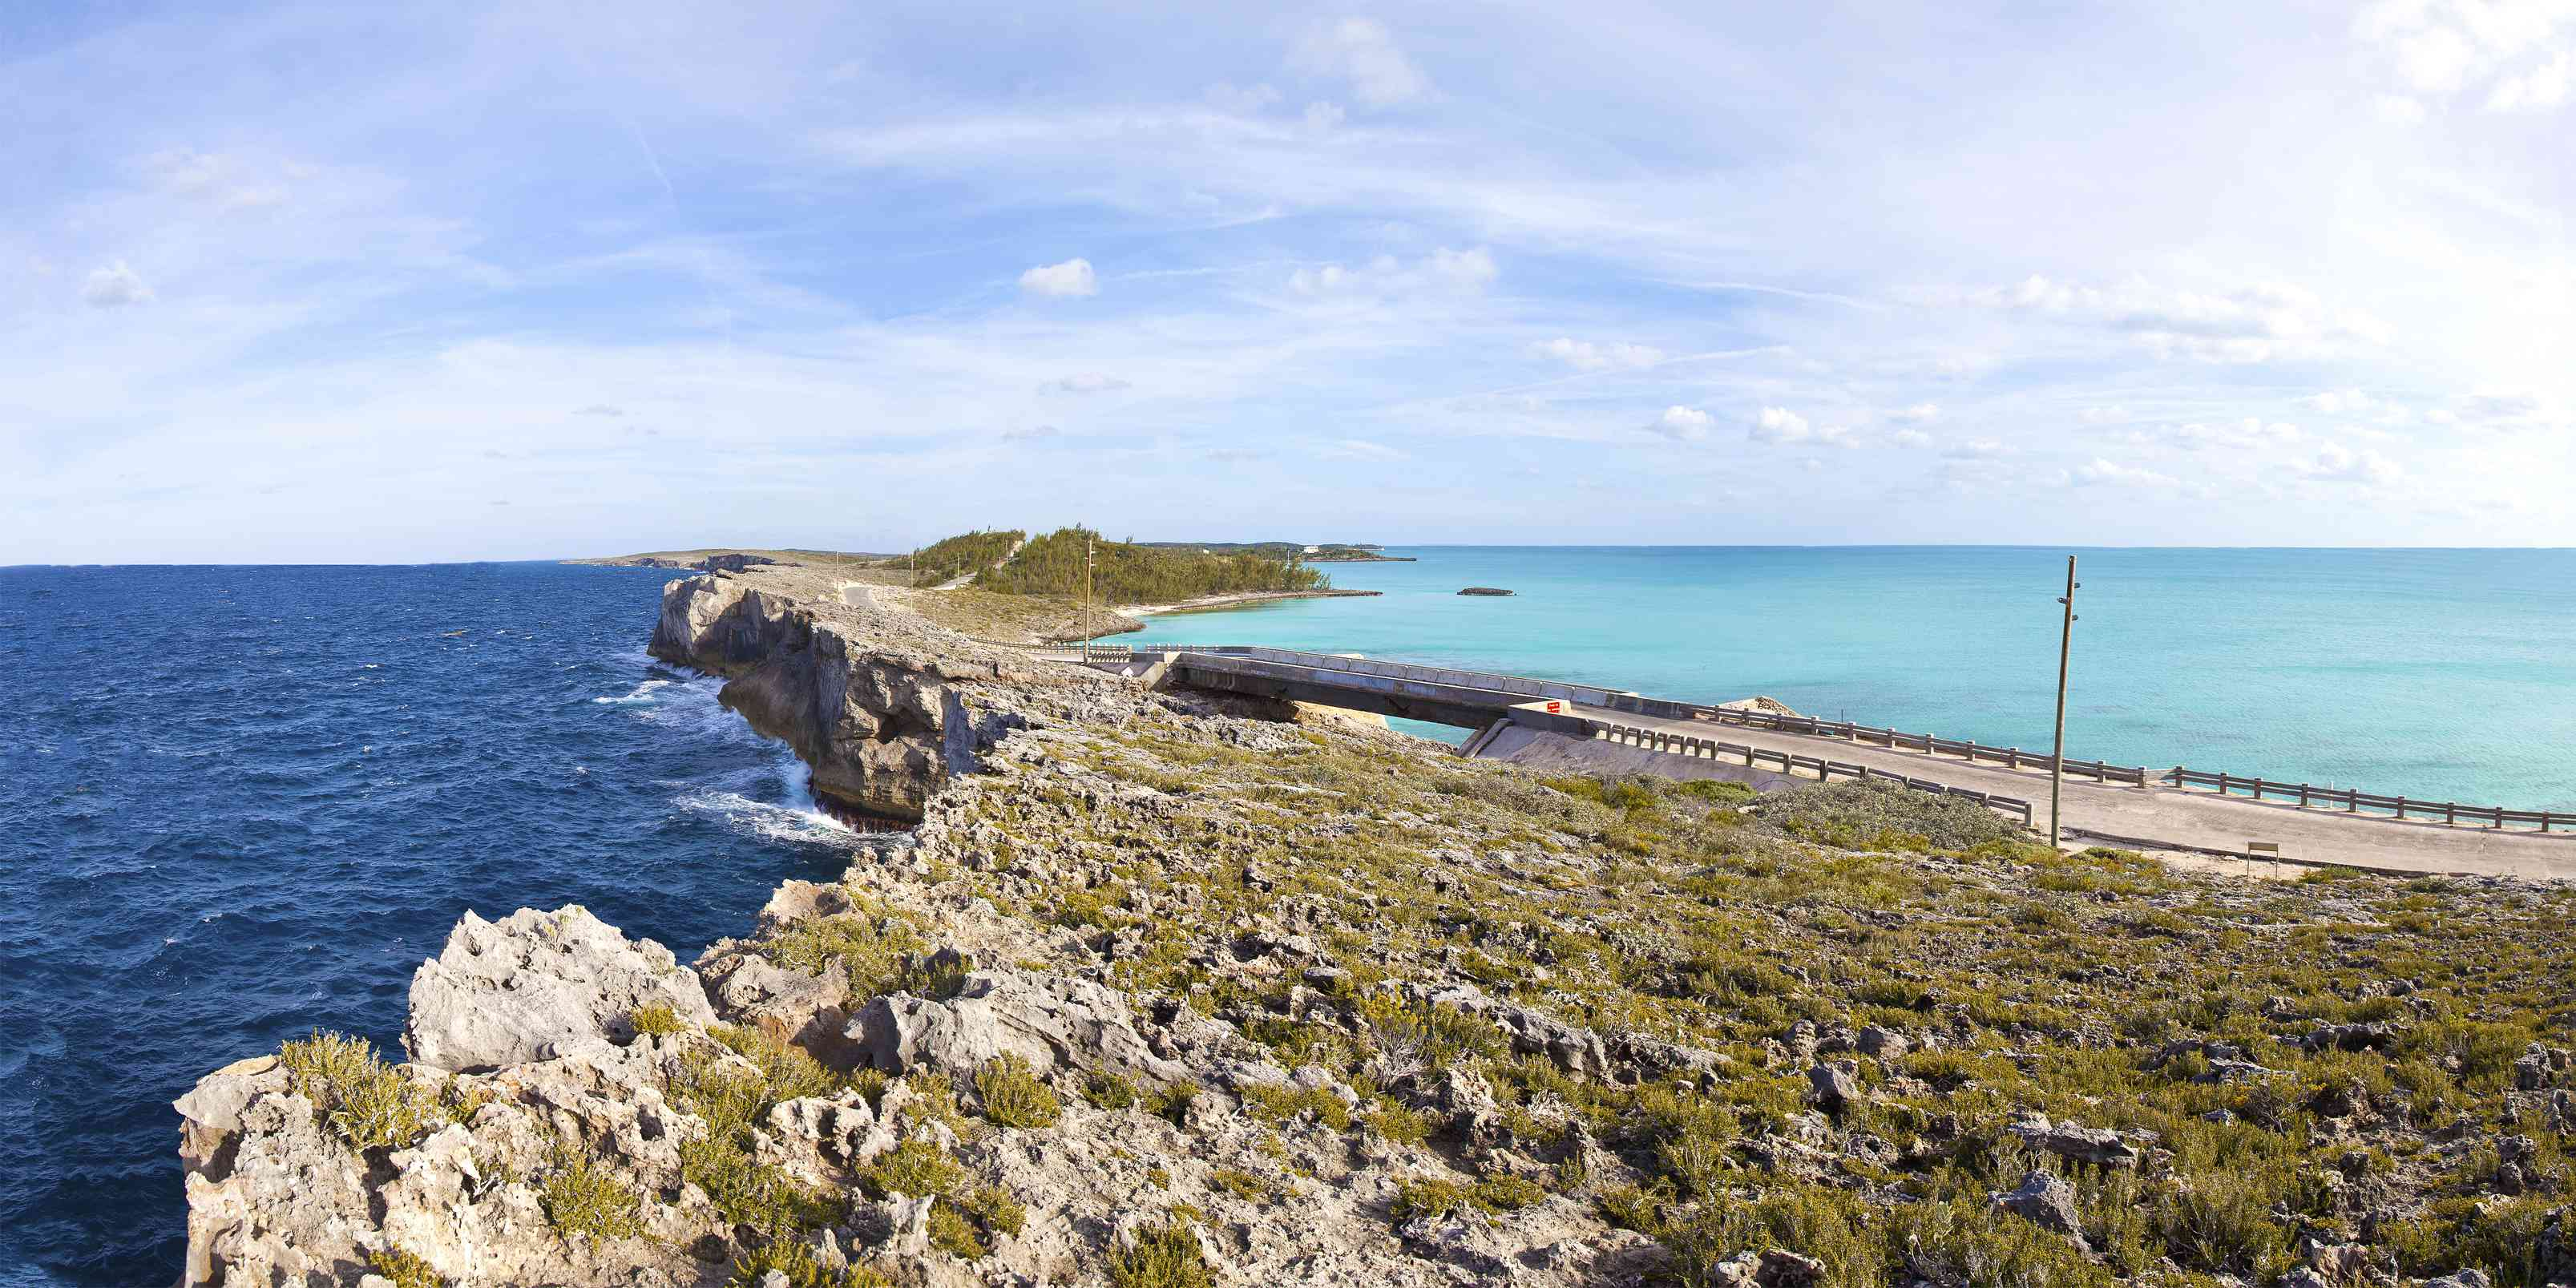 Glass Window Bridge at Eleuthera, Bahamas that separating the dark blue Atlantic ocean and the turquoise shallows